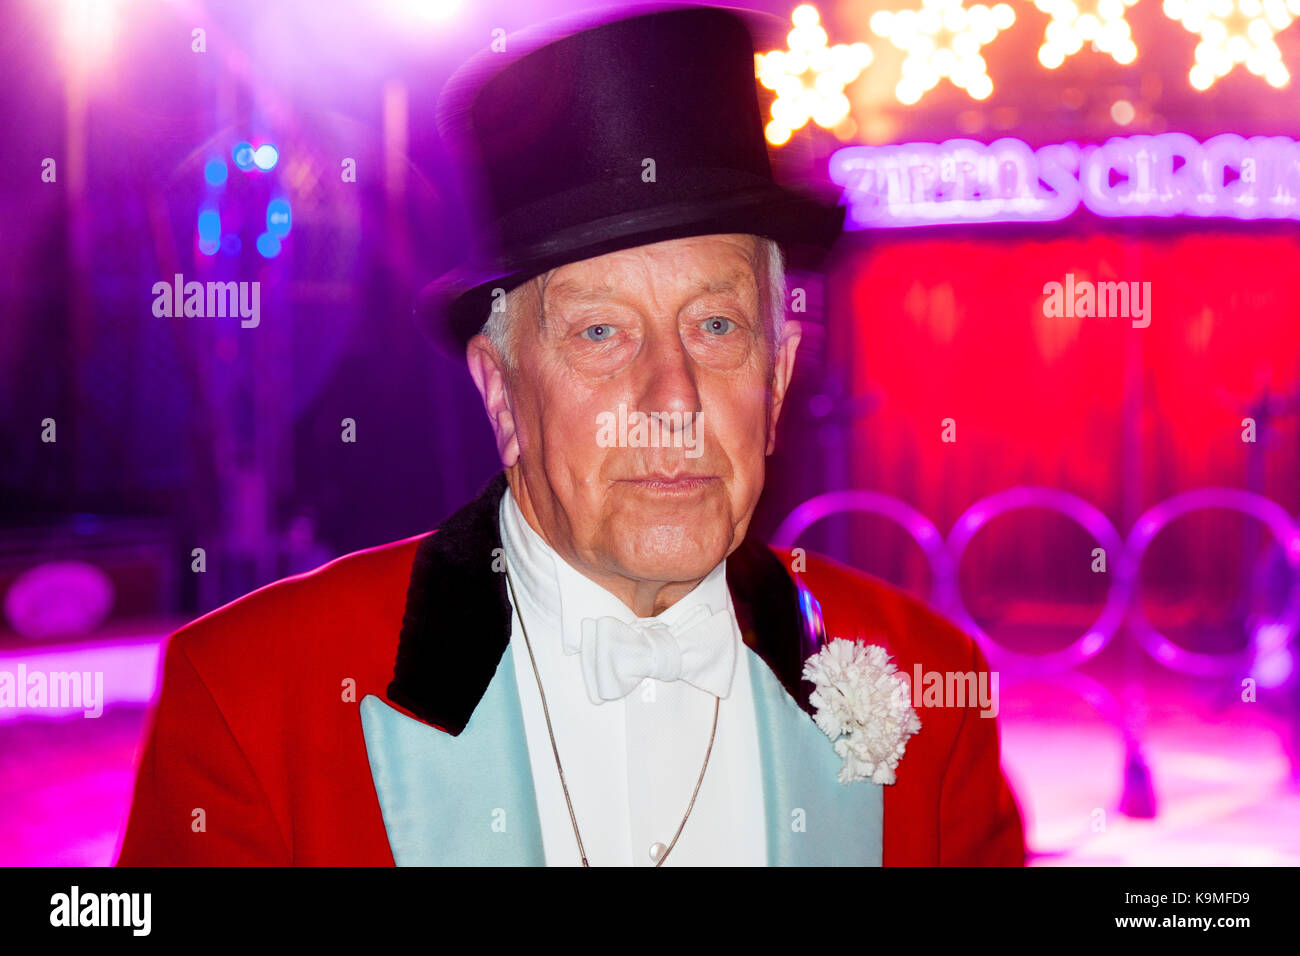 Congressional Circus >> The Ringmaster Stock Photos & The Ringmaster Stock Images - Alamy